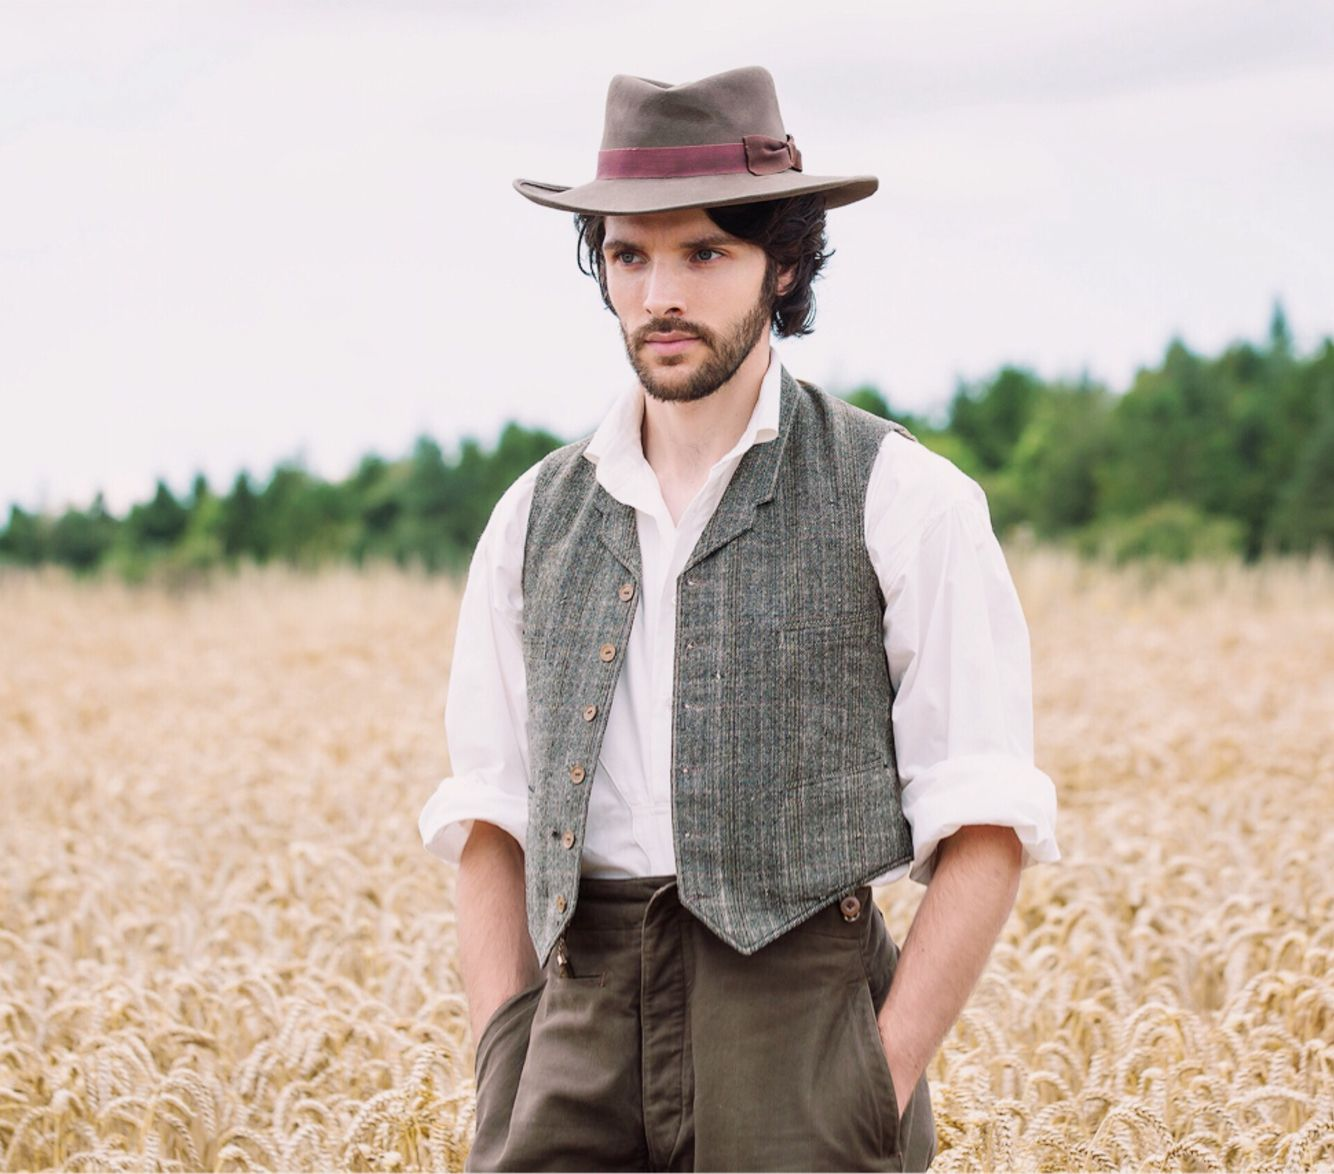 Colin Morgan in The Living And The Dead 1x03 *re-edit, Source: http://www.farfarawaysite.com/section/living/gallery3/gallery.htm